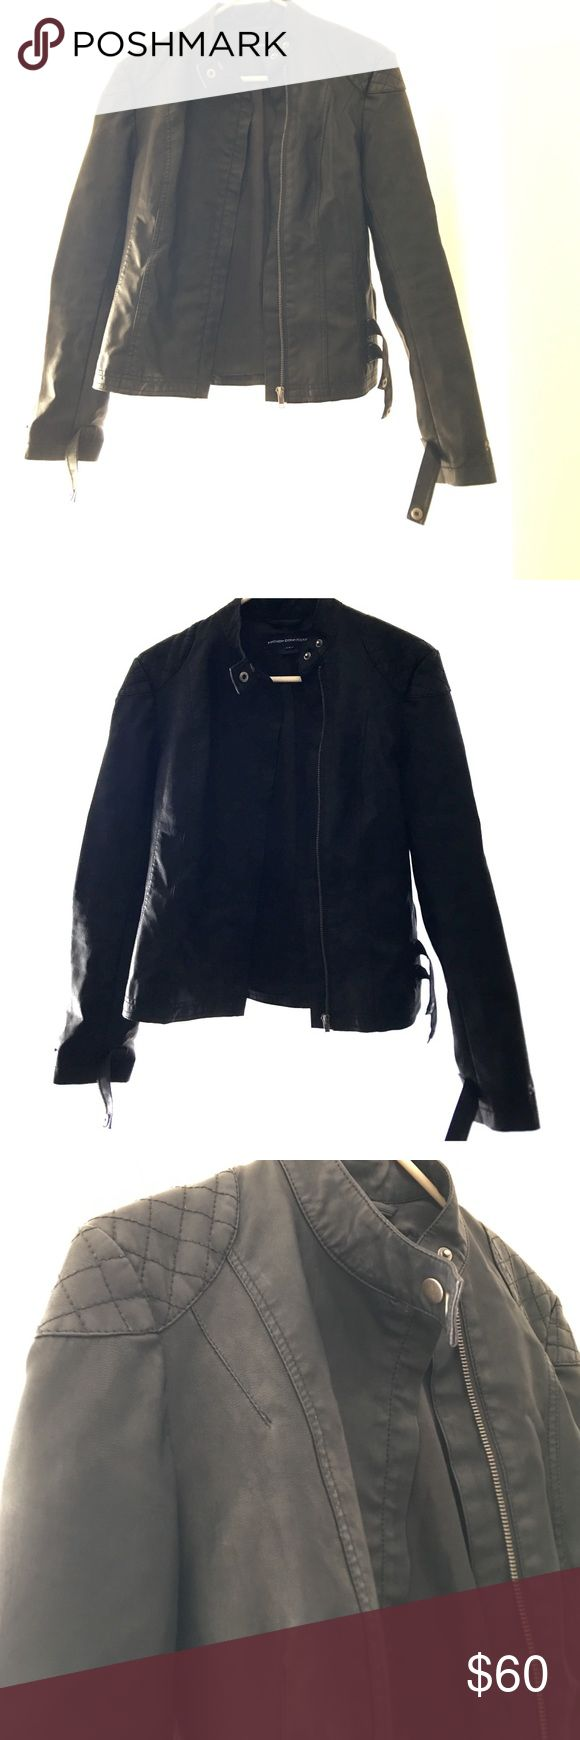 "French Connection Faux Leather Jacket French Connection ""Leather"" Jacket. Size US 6. I wear 2-4 and it fit okay with a little room. Polyurethane/Polyester/Viscose. French Connection Jackets & Coats"